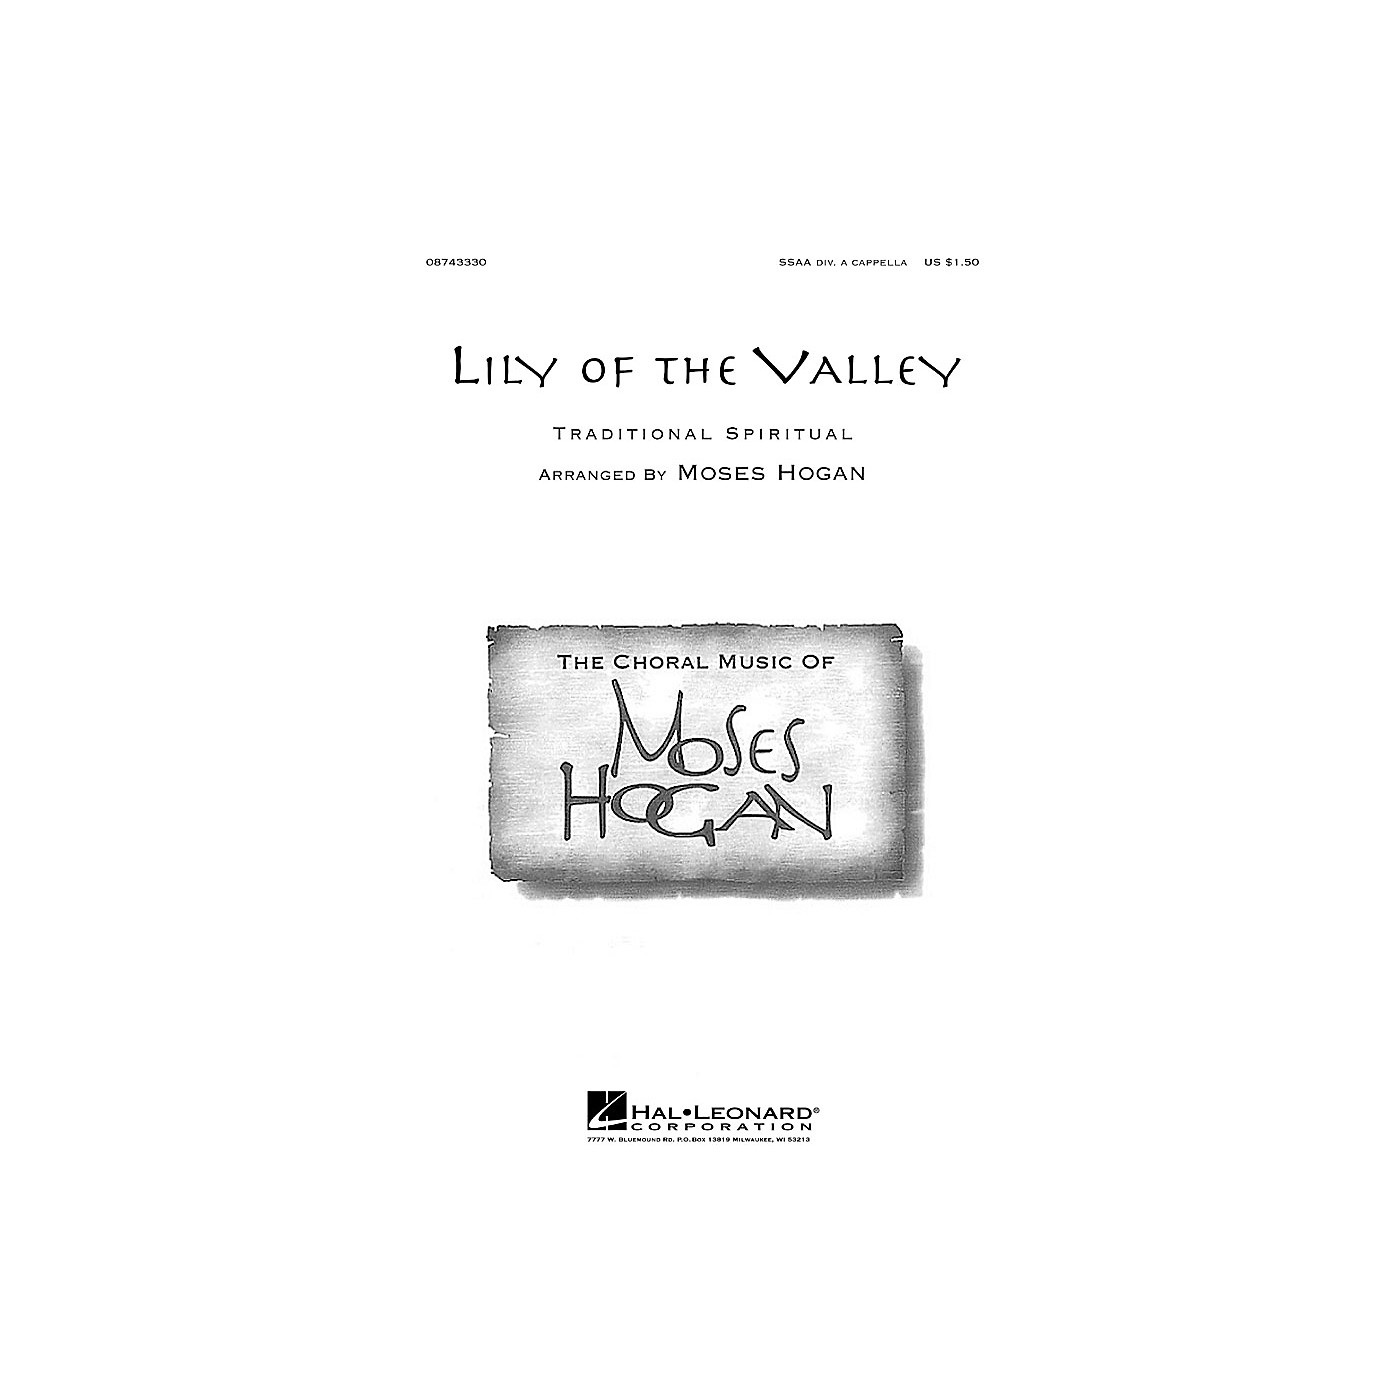 Hal Leonard Lily of the Valley SSAA Div A Cappella arranged by Moses Hogan thumbnail